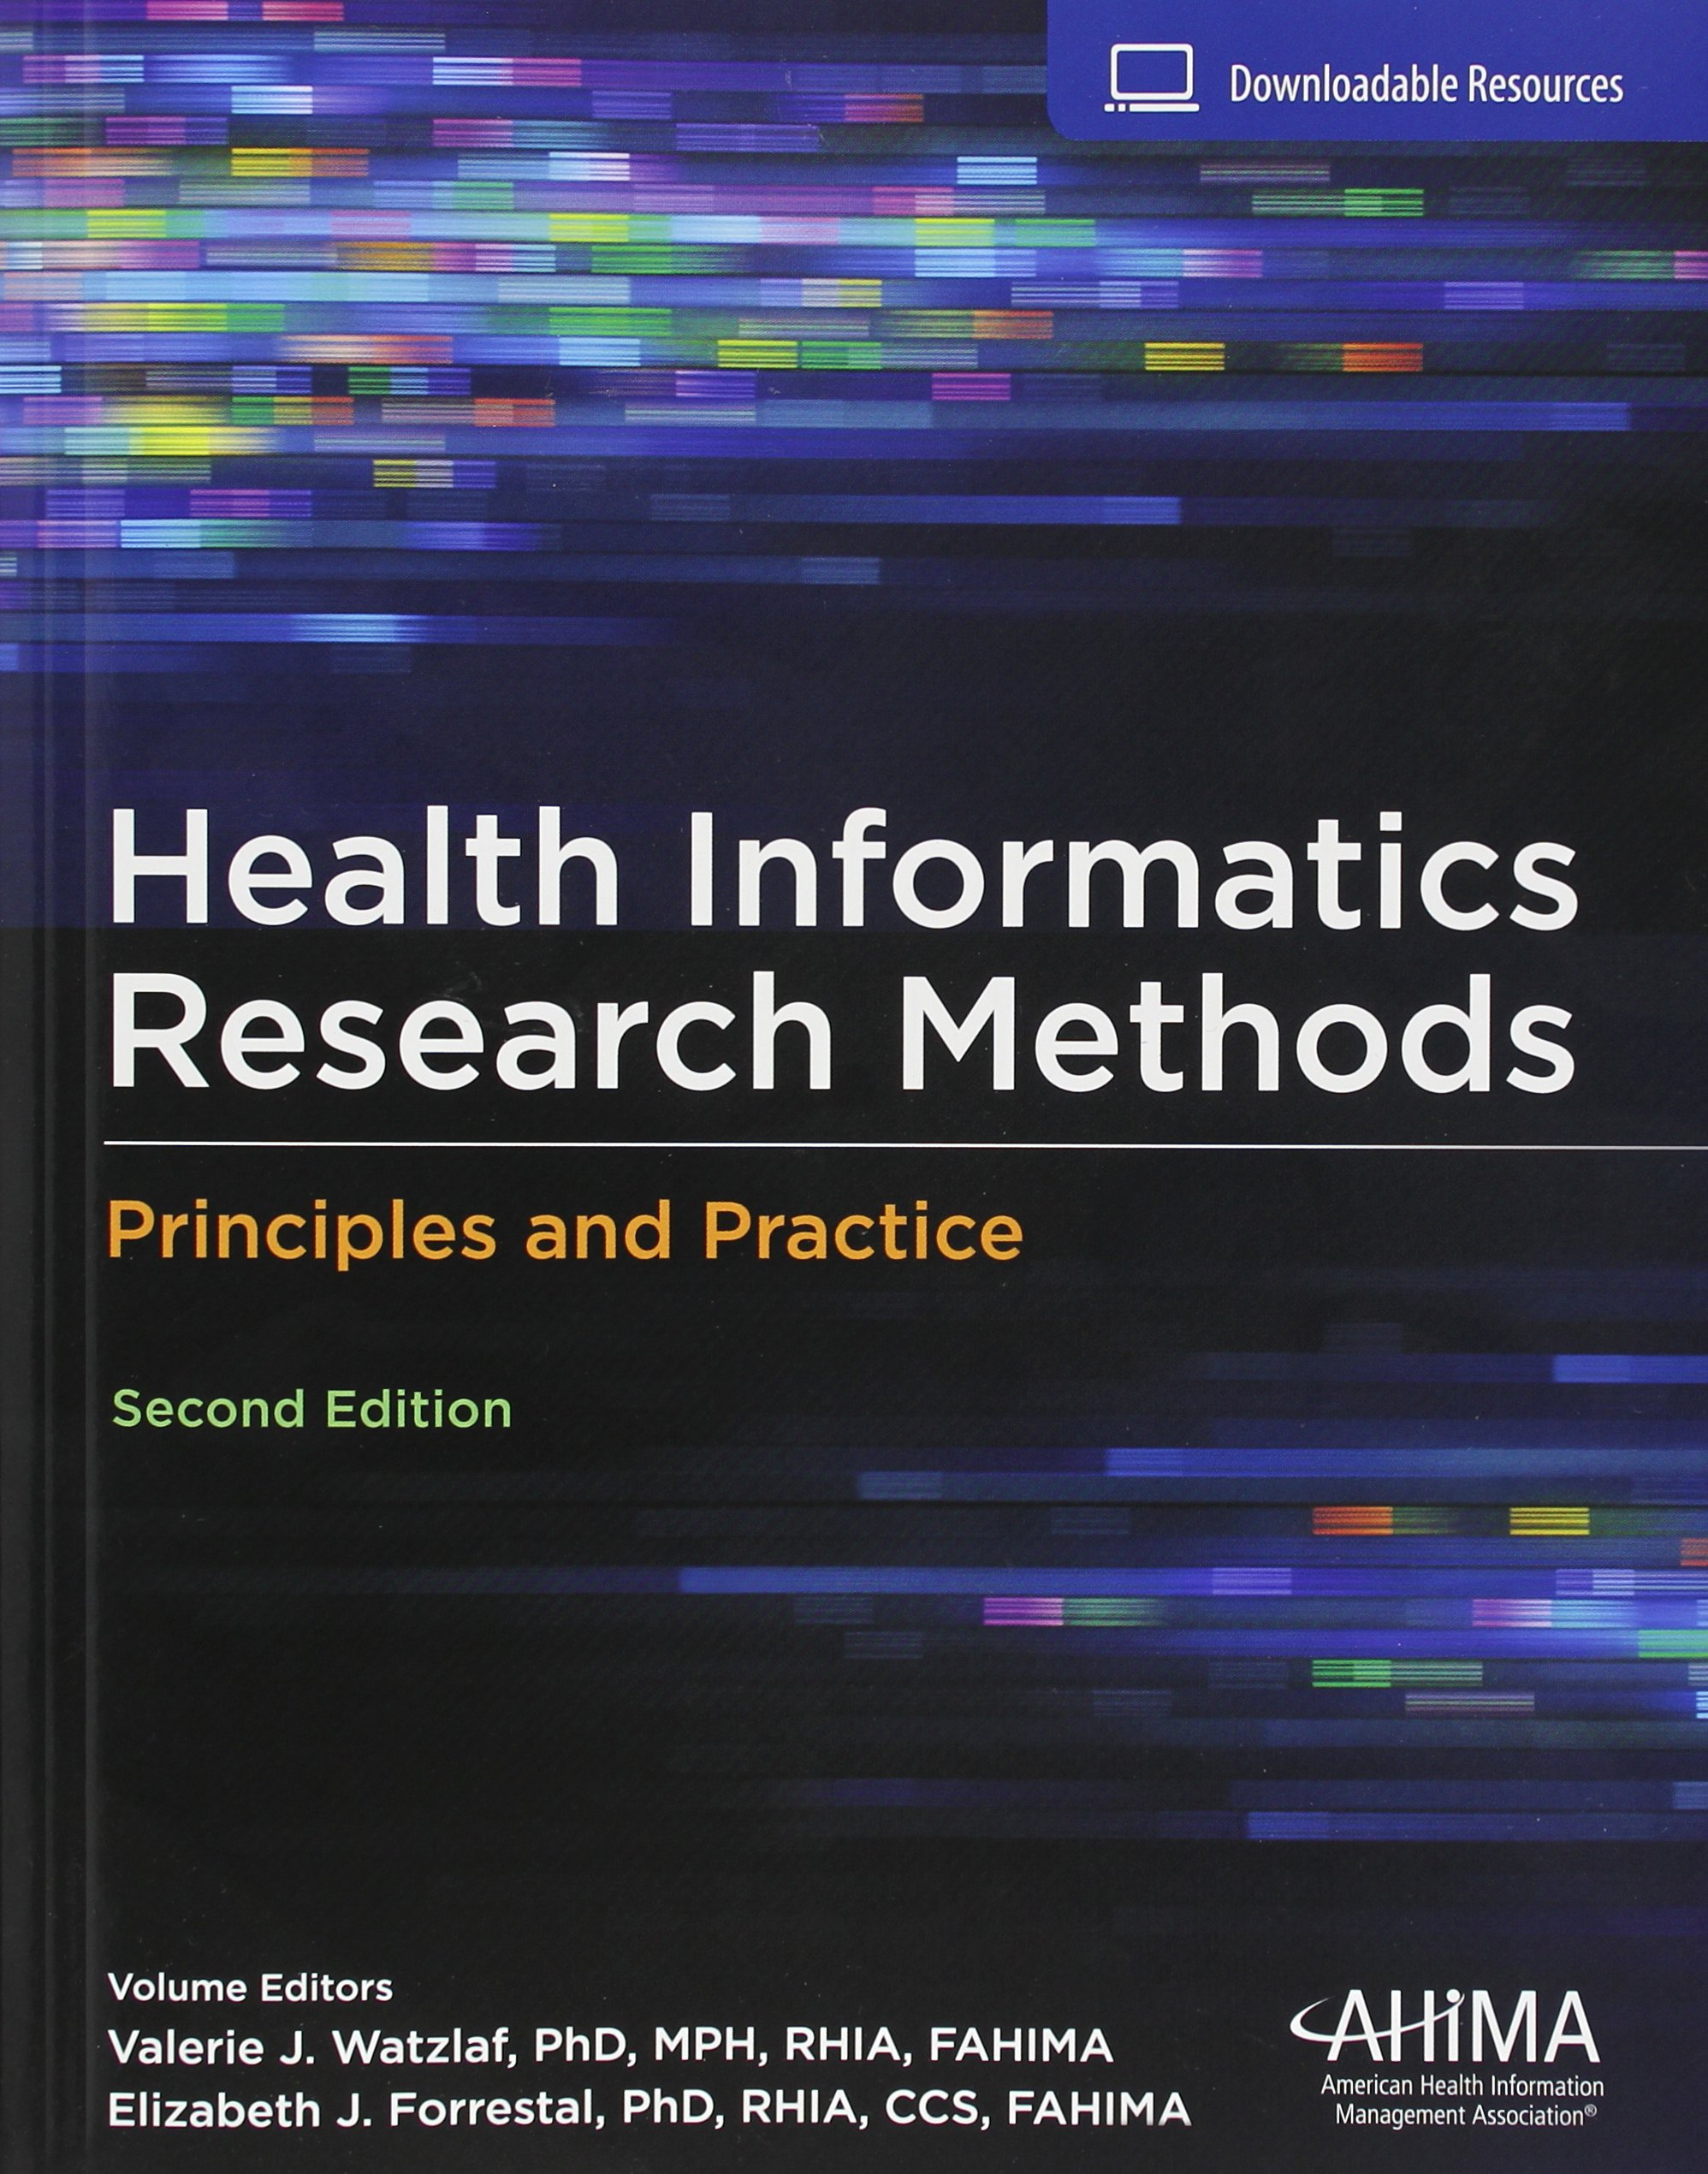 Health Informatics Research Methods: Principles and Practice by AHIMA